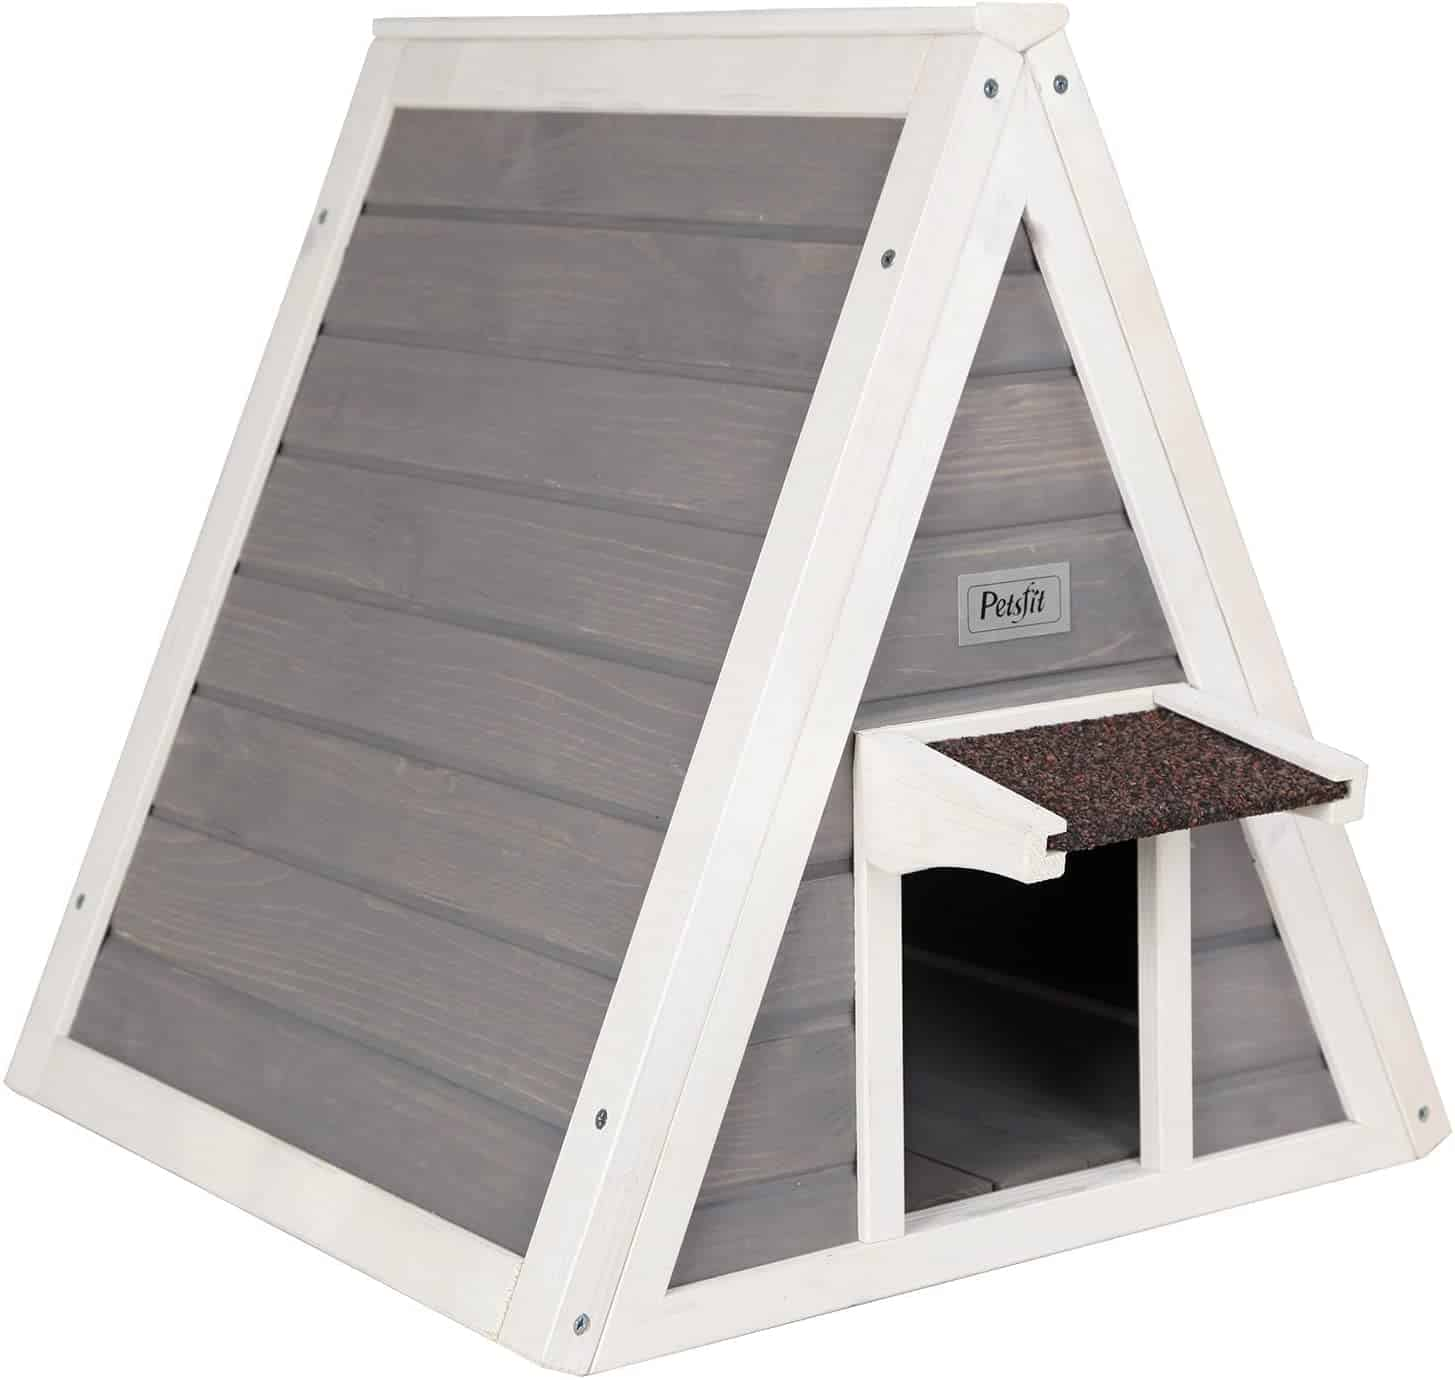 Best Outdoor Cat House for 2020 Plus Reviews of Other Top Picks 9